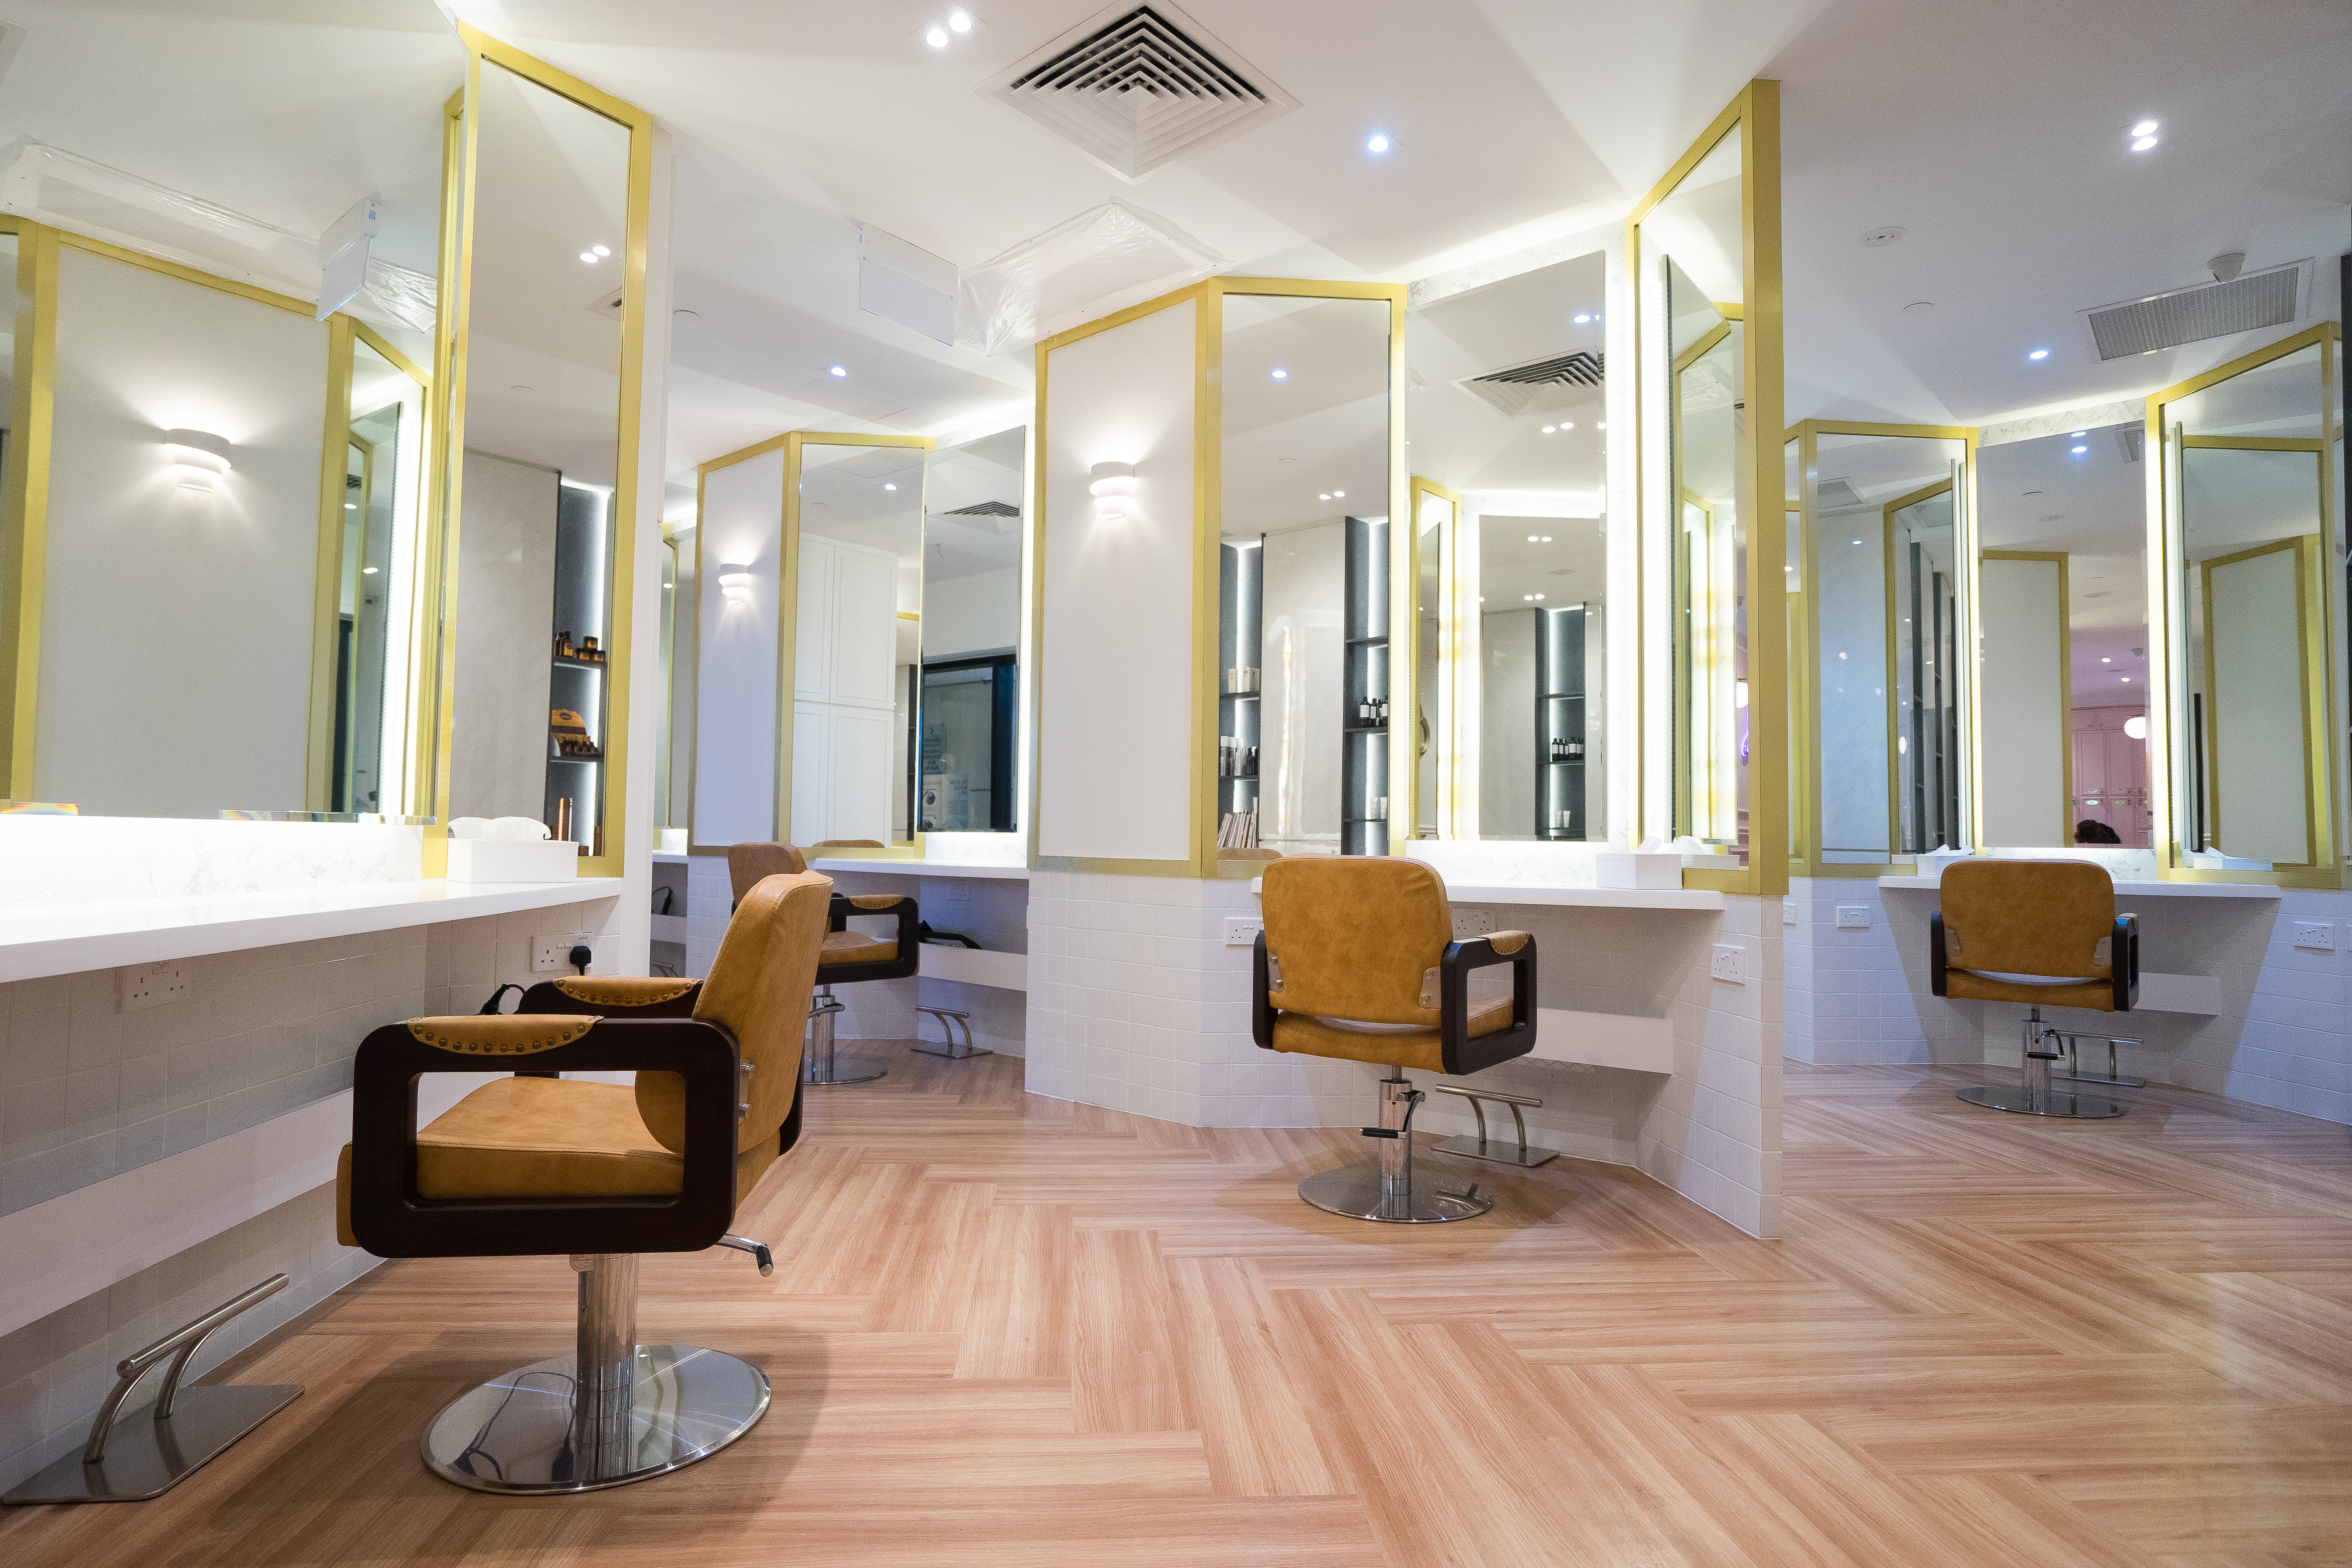 The Beauty Emporium by The Urban Aesthetic